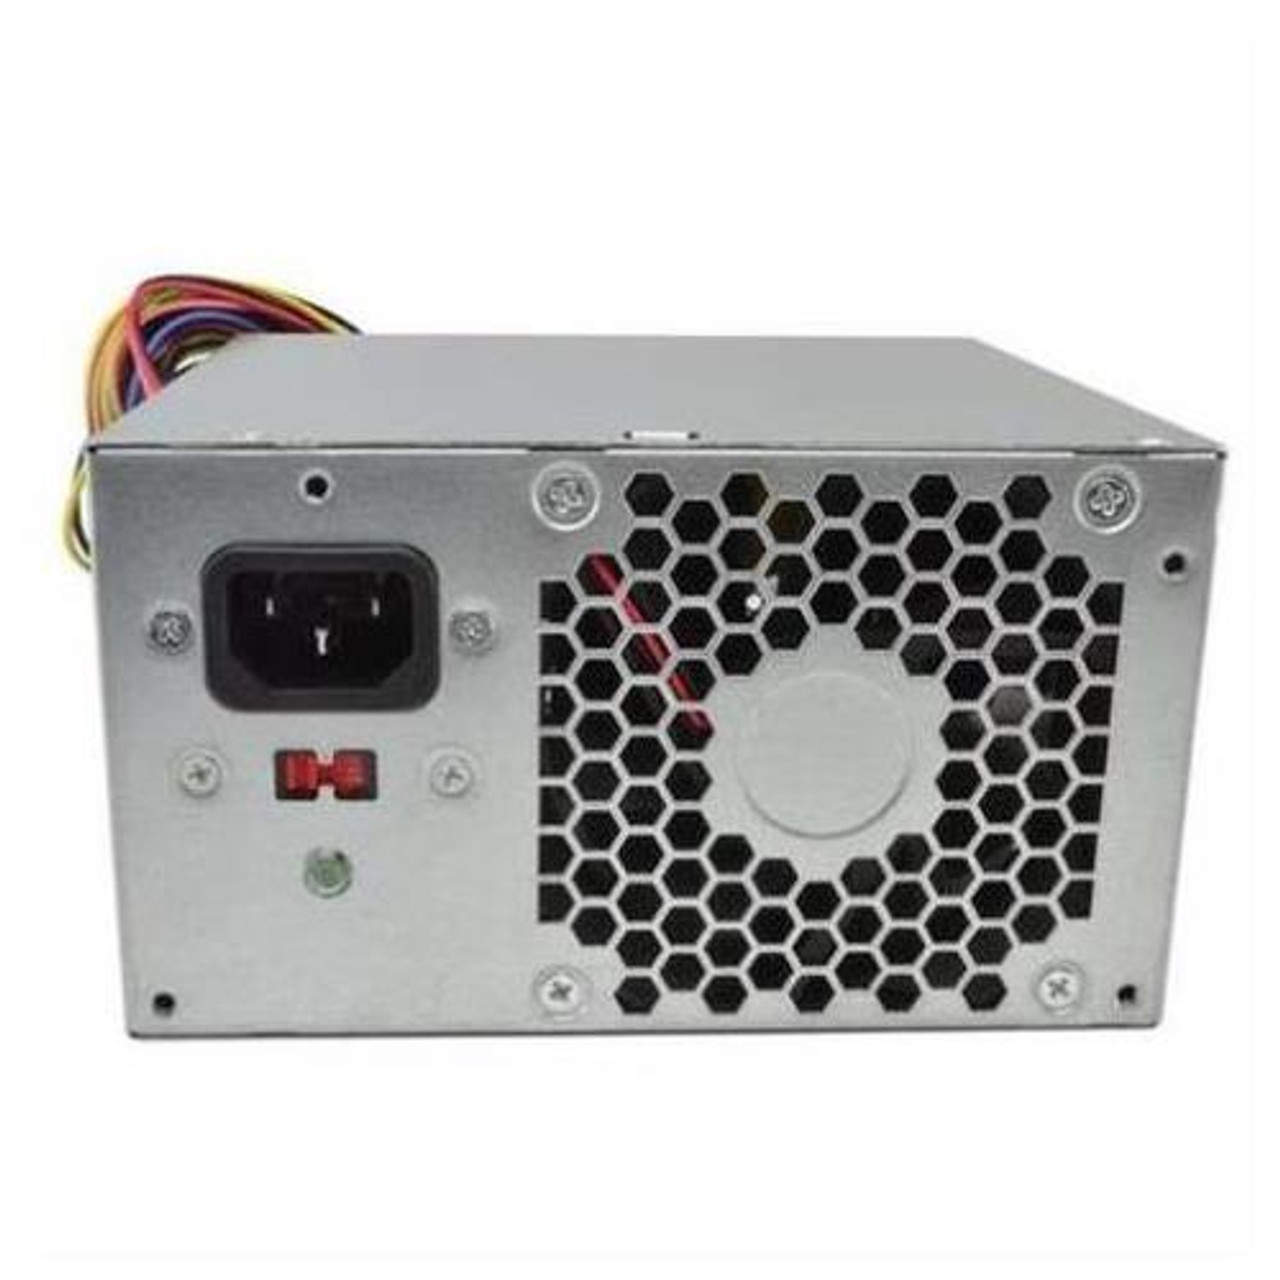 For 110 VAC HP RM1-6755-000CN Low-voltage power supply PC board assembly